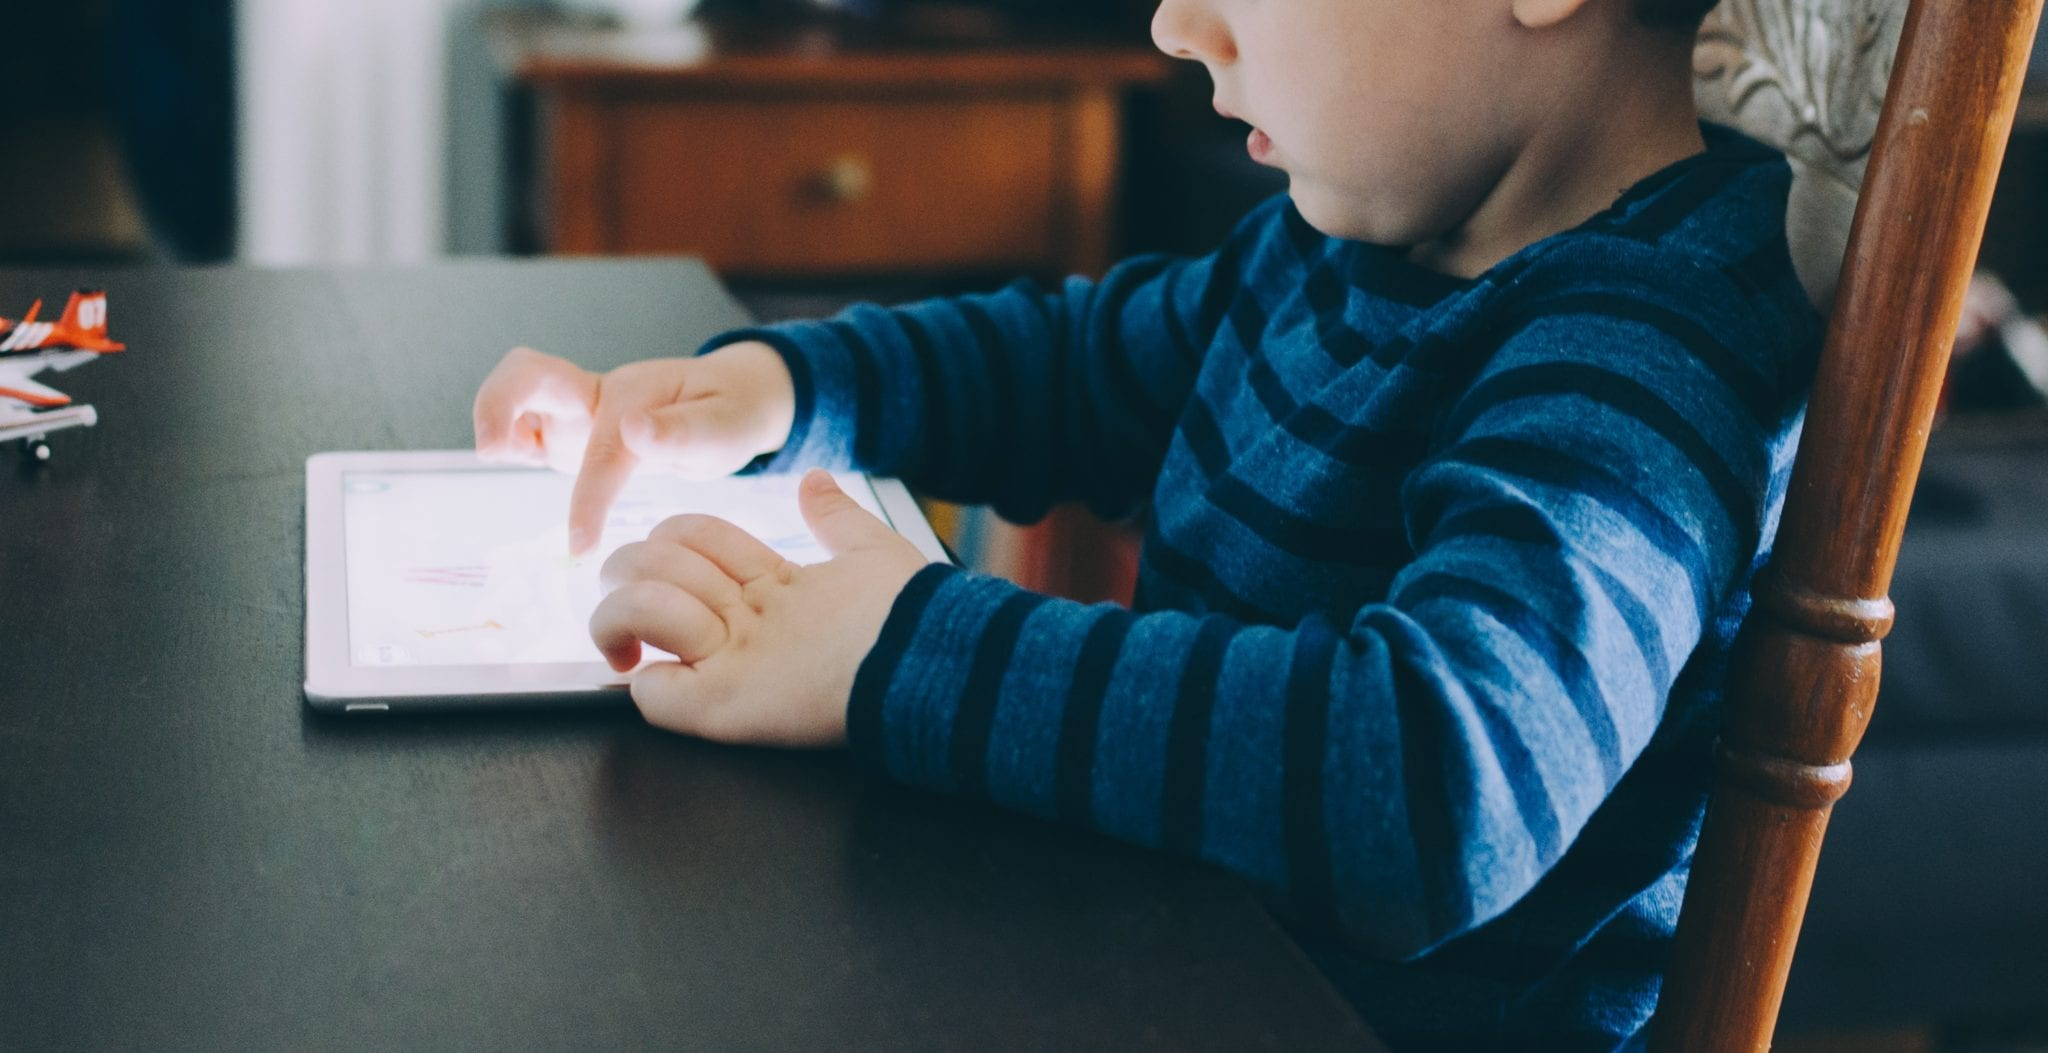 Home learning resources - student using tablet at home